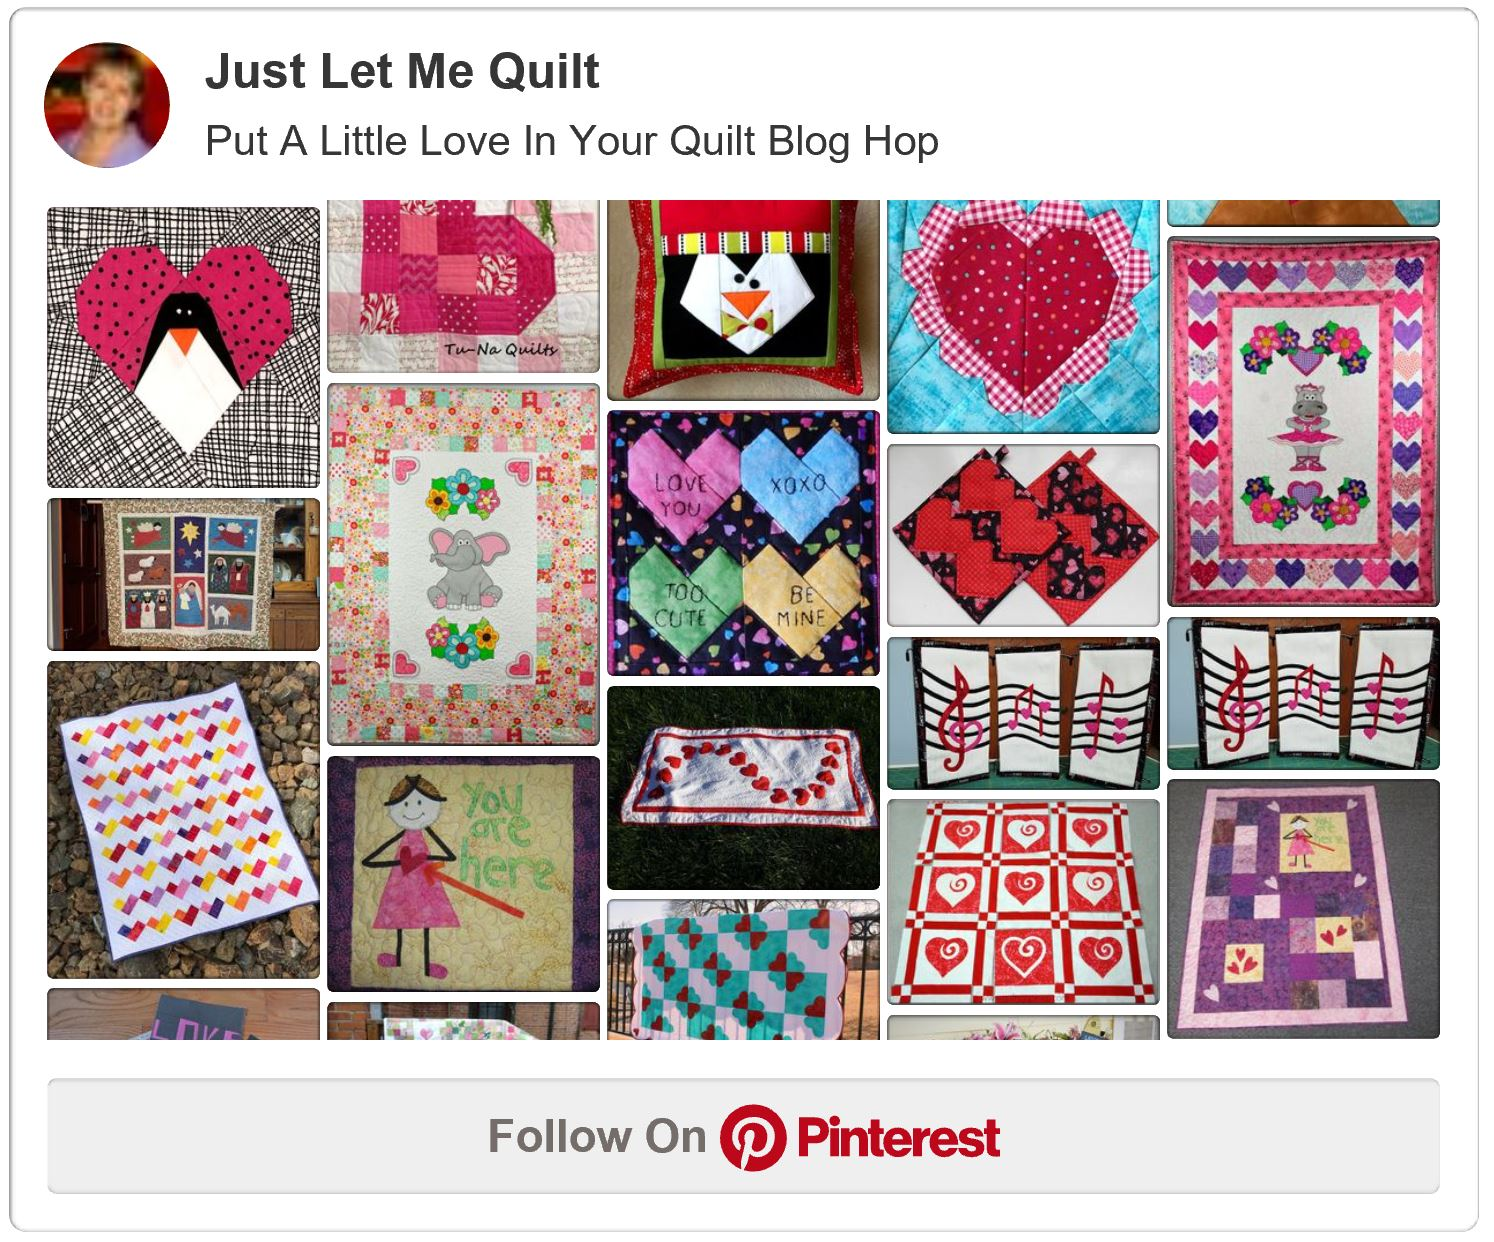 Pinterest - Put A Little Love In Your Quilt